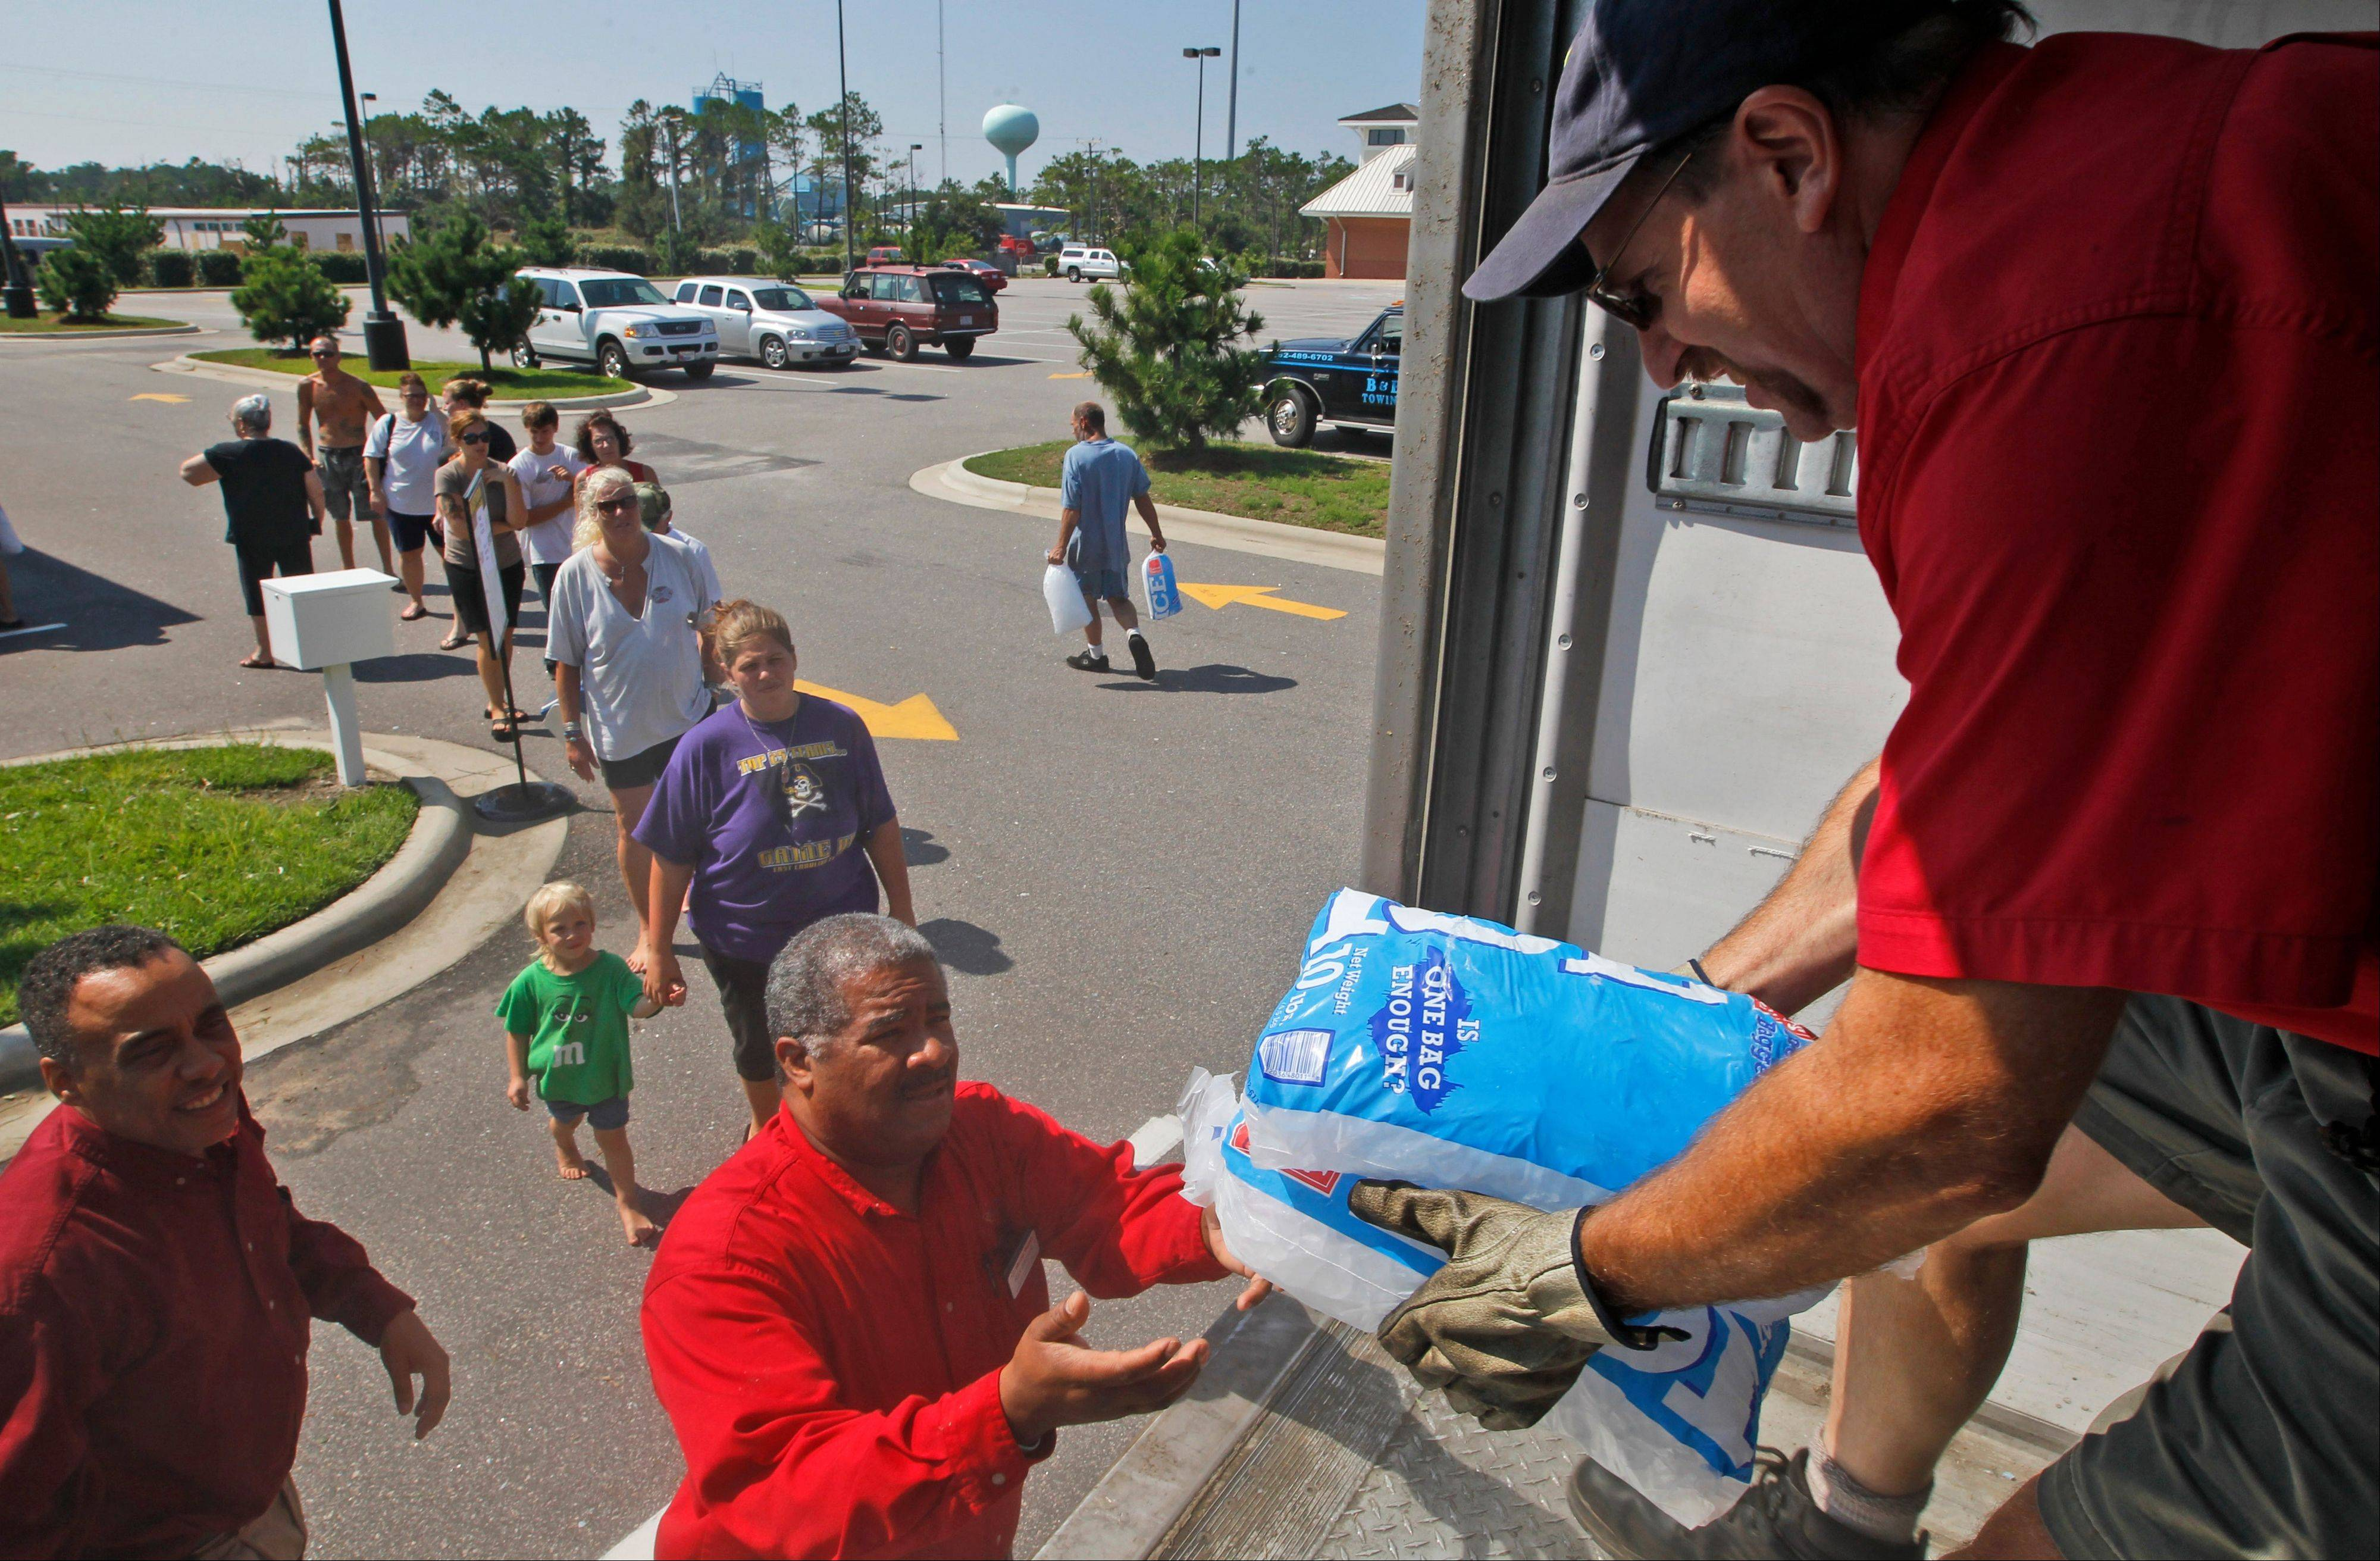 Steve Davenport, right, Ray Brown, center, and Marvin Franklin, left, of Harris Teeter supermarket, hand out free bags of ice from a truck as residents queue up as many people are still without power on the Outer Banks in Kill Devil Hills, N.C., Sunday, Aug. 28, 2011 in the aftermath of Hurricane Irene after it left the North Carolina coast.